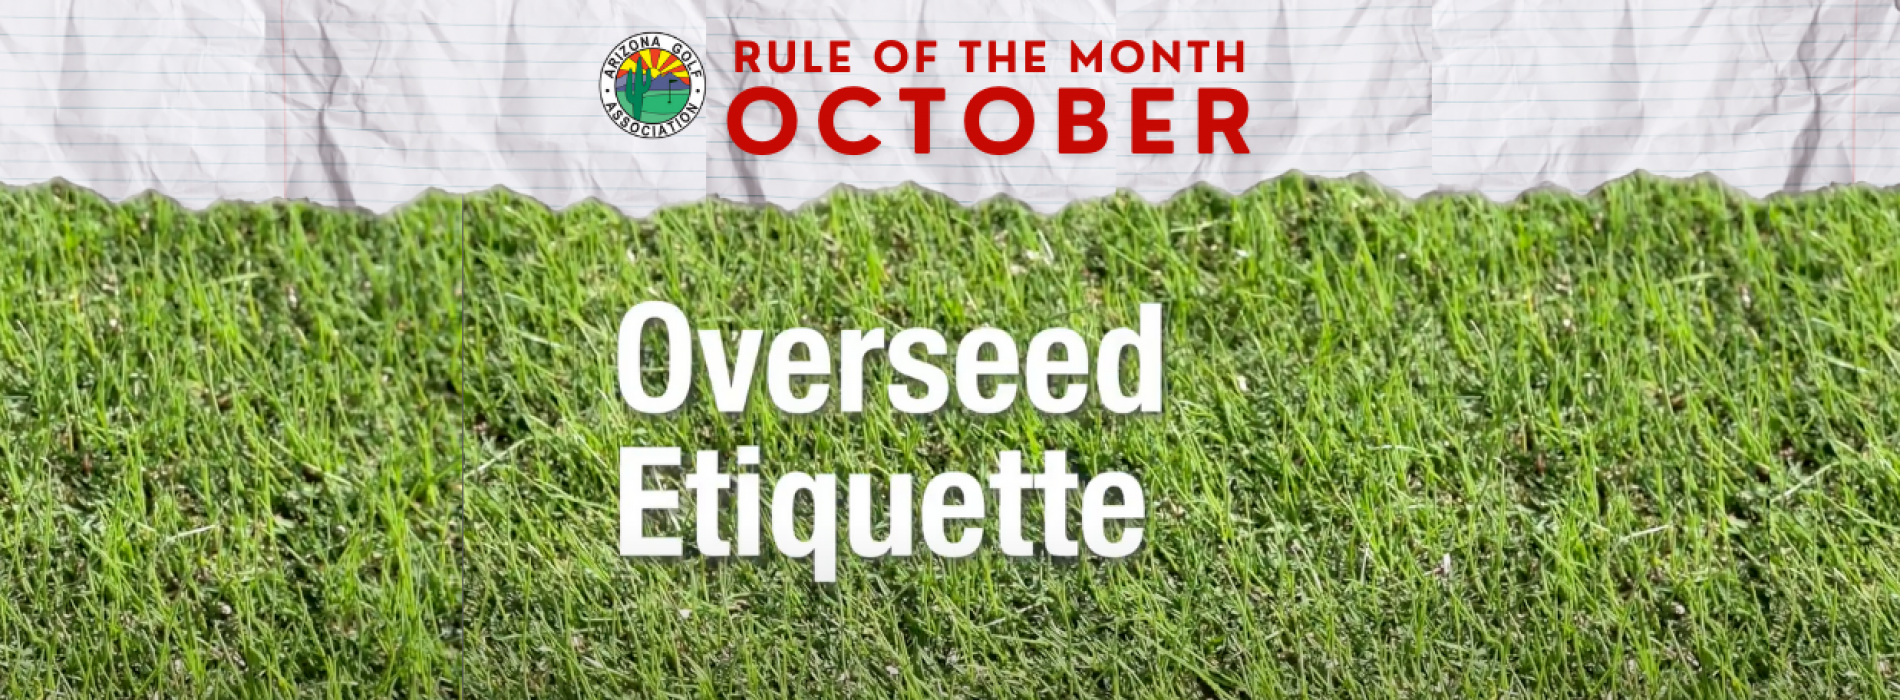 October Rule of the Month